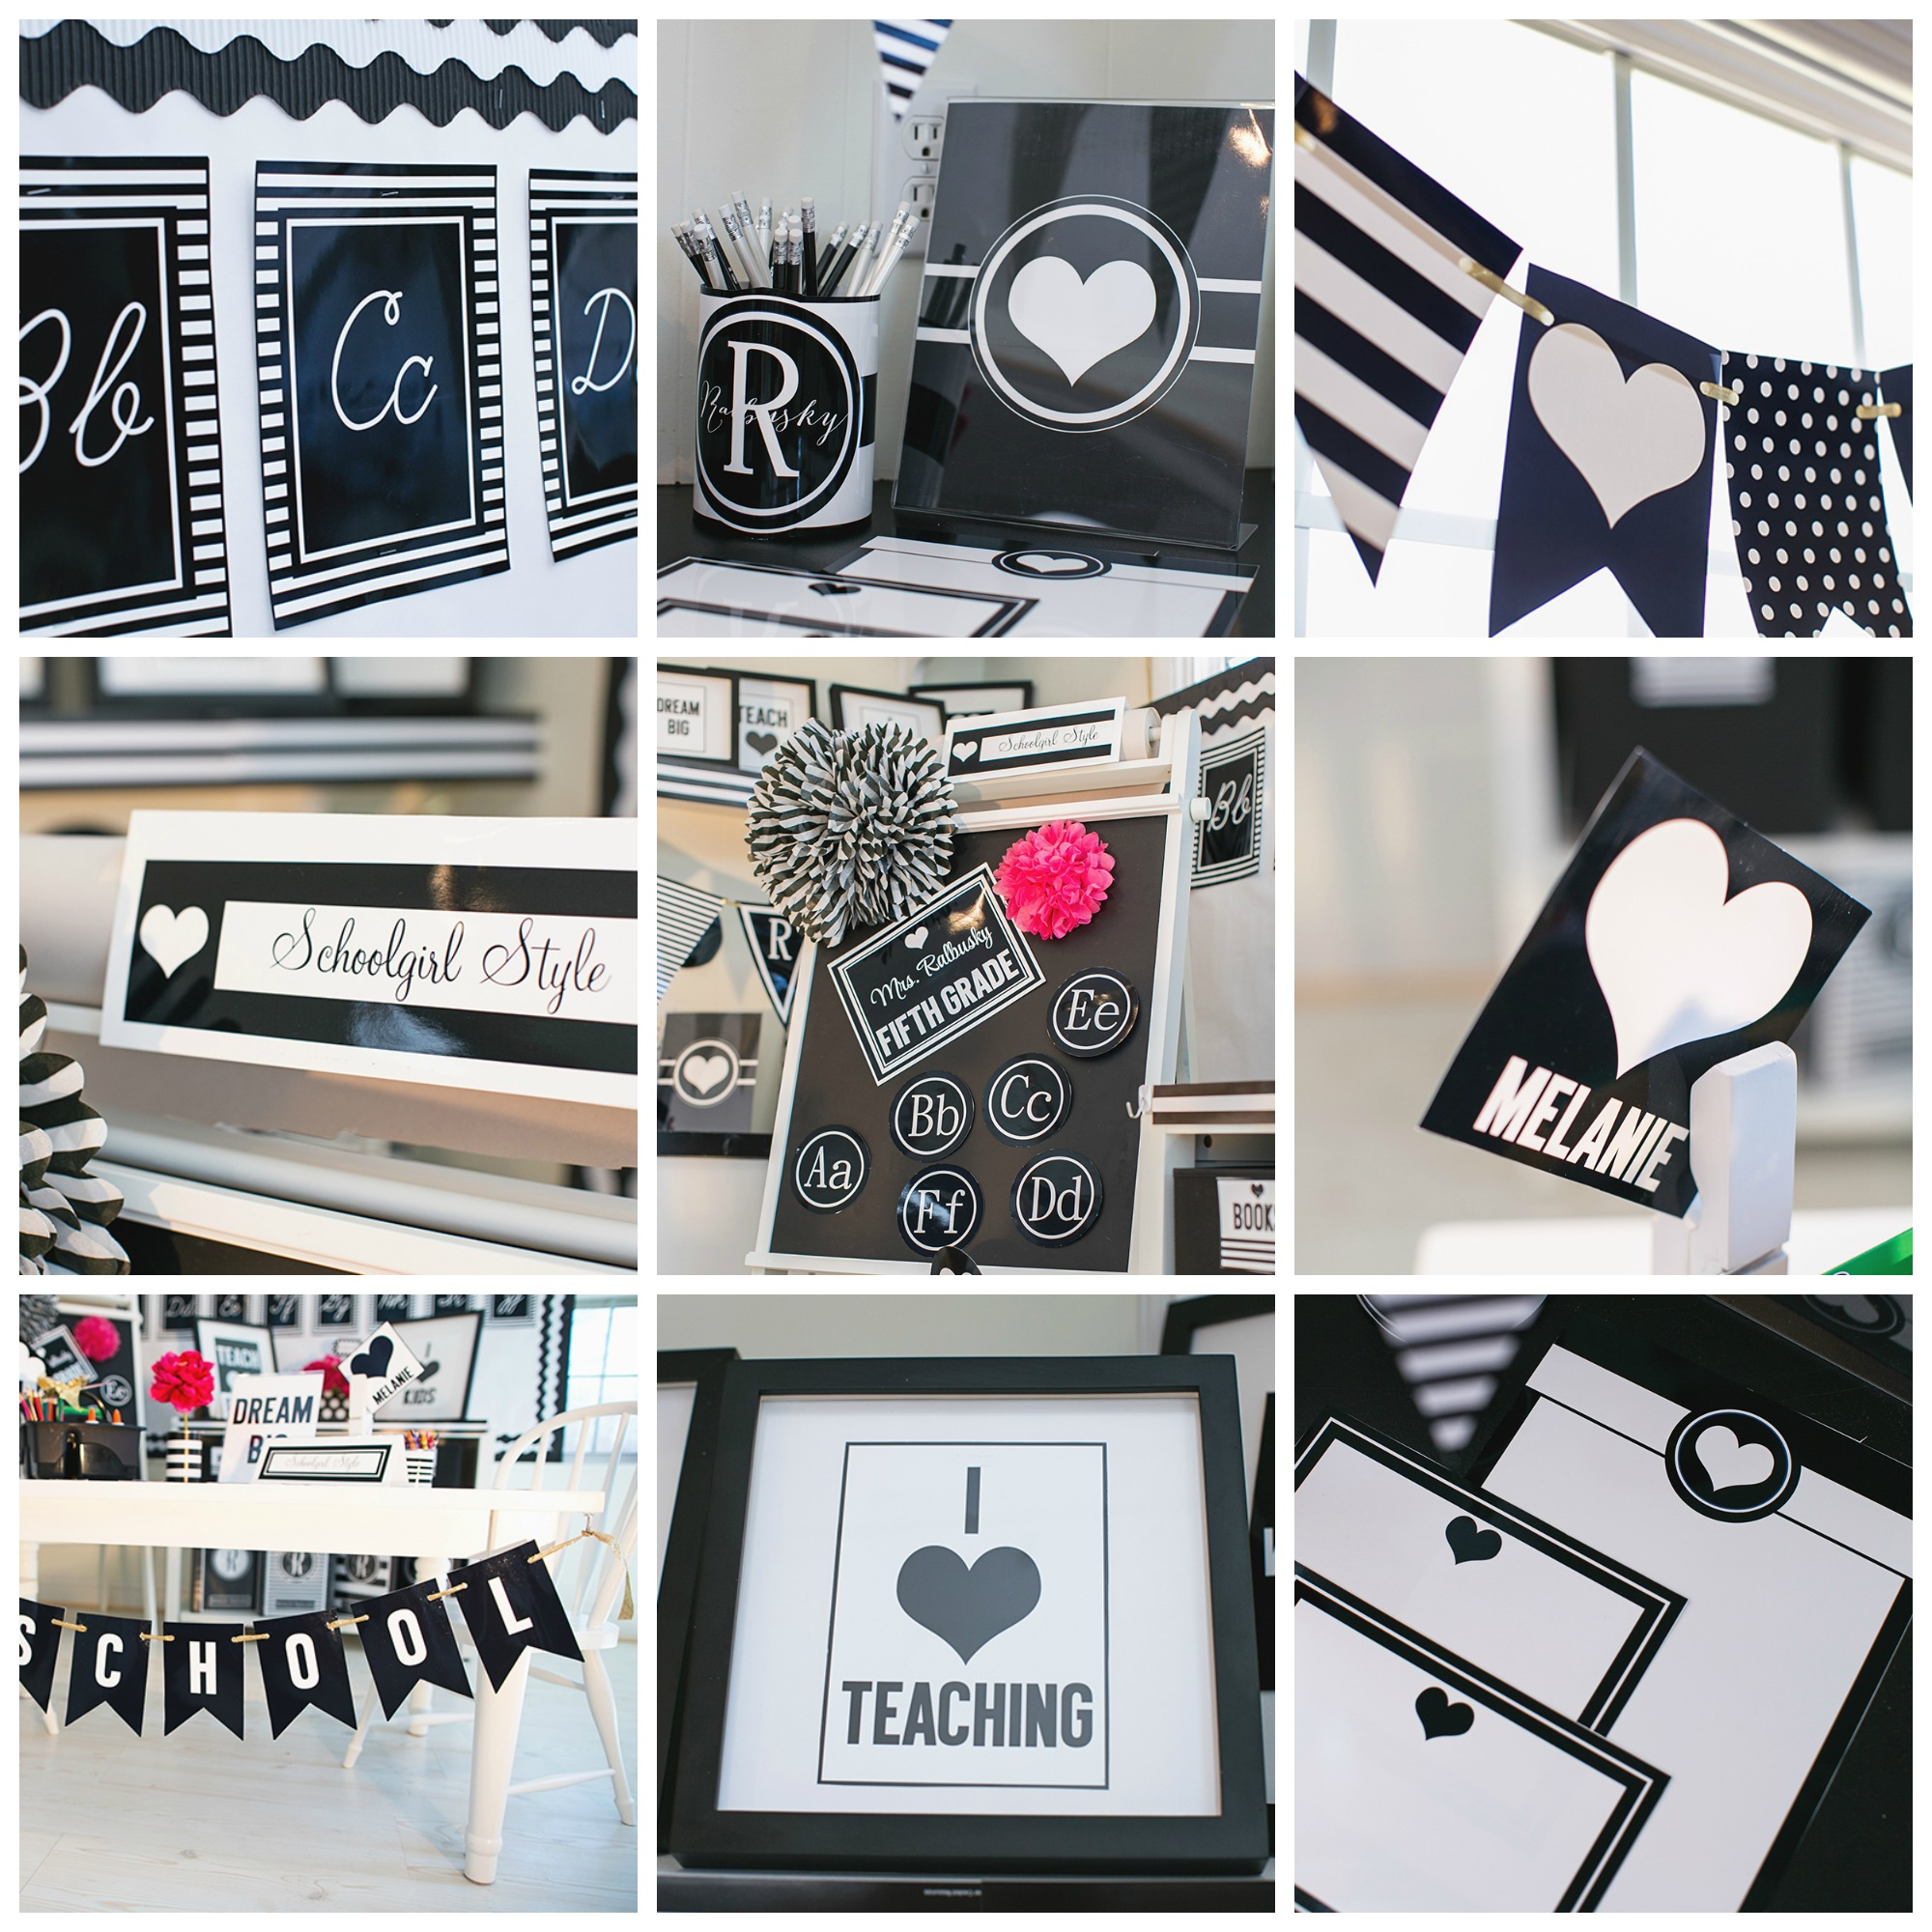 Classroom Decor Black ~ I heart school inspiration boards schoolgirlstyle